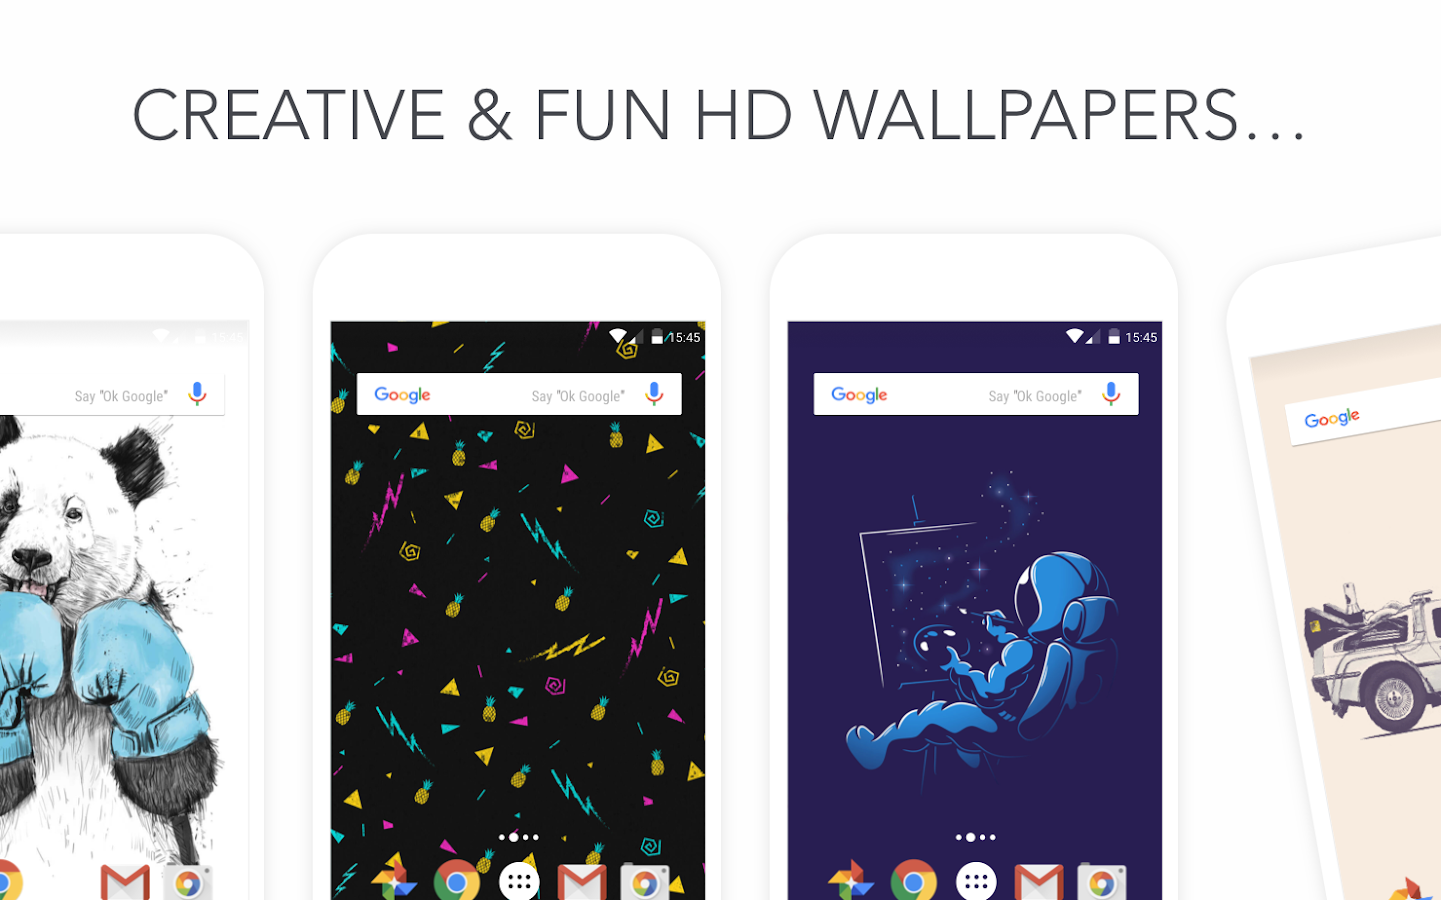 Walli Wallpapers Hd Android Apps On Google Play HD Wallpapers Download Free Images Wallpaper [1000image.com]